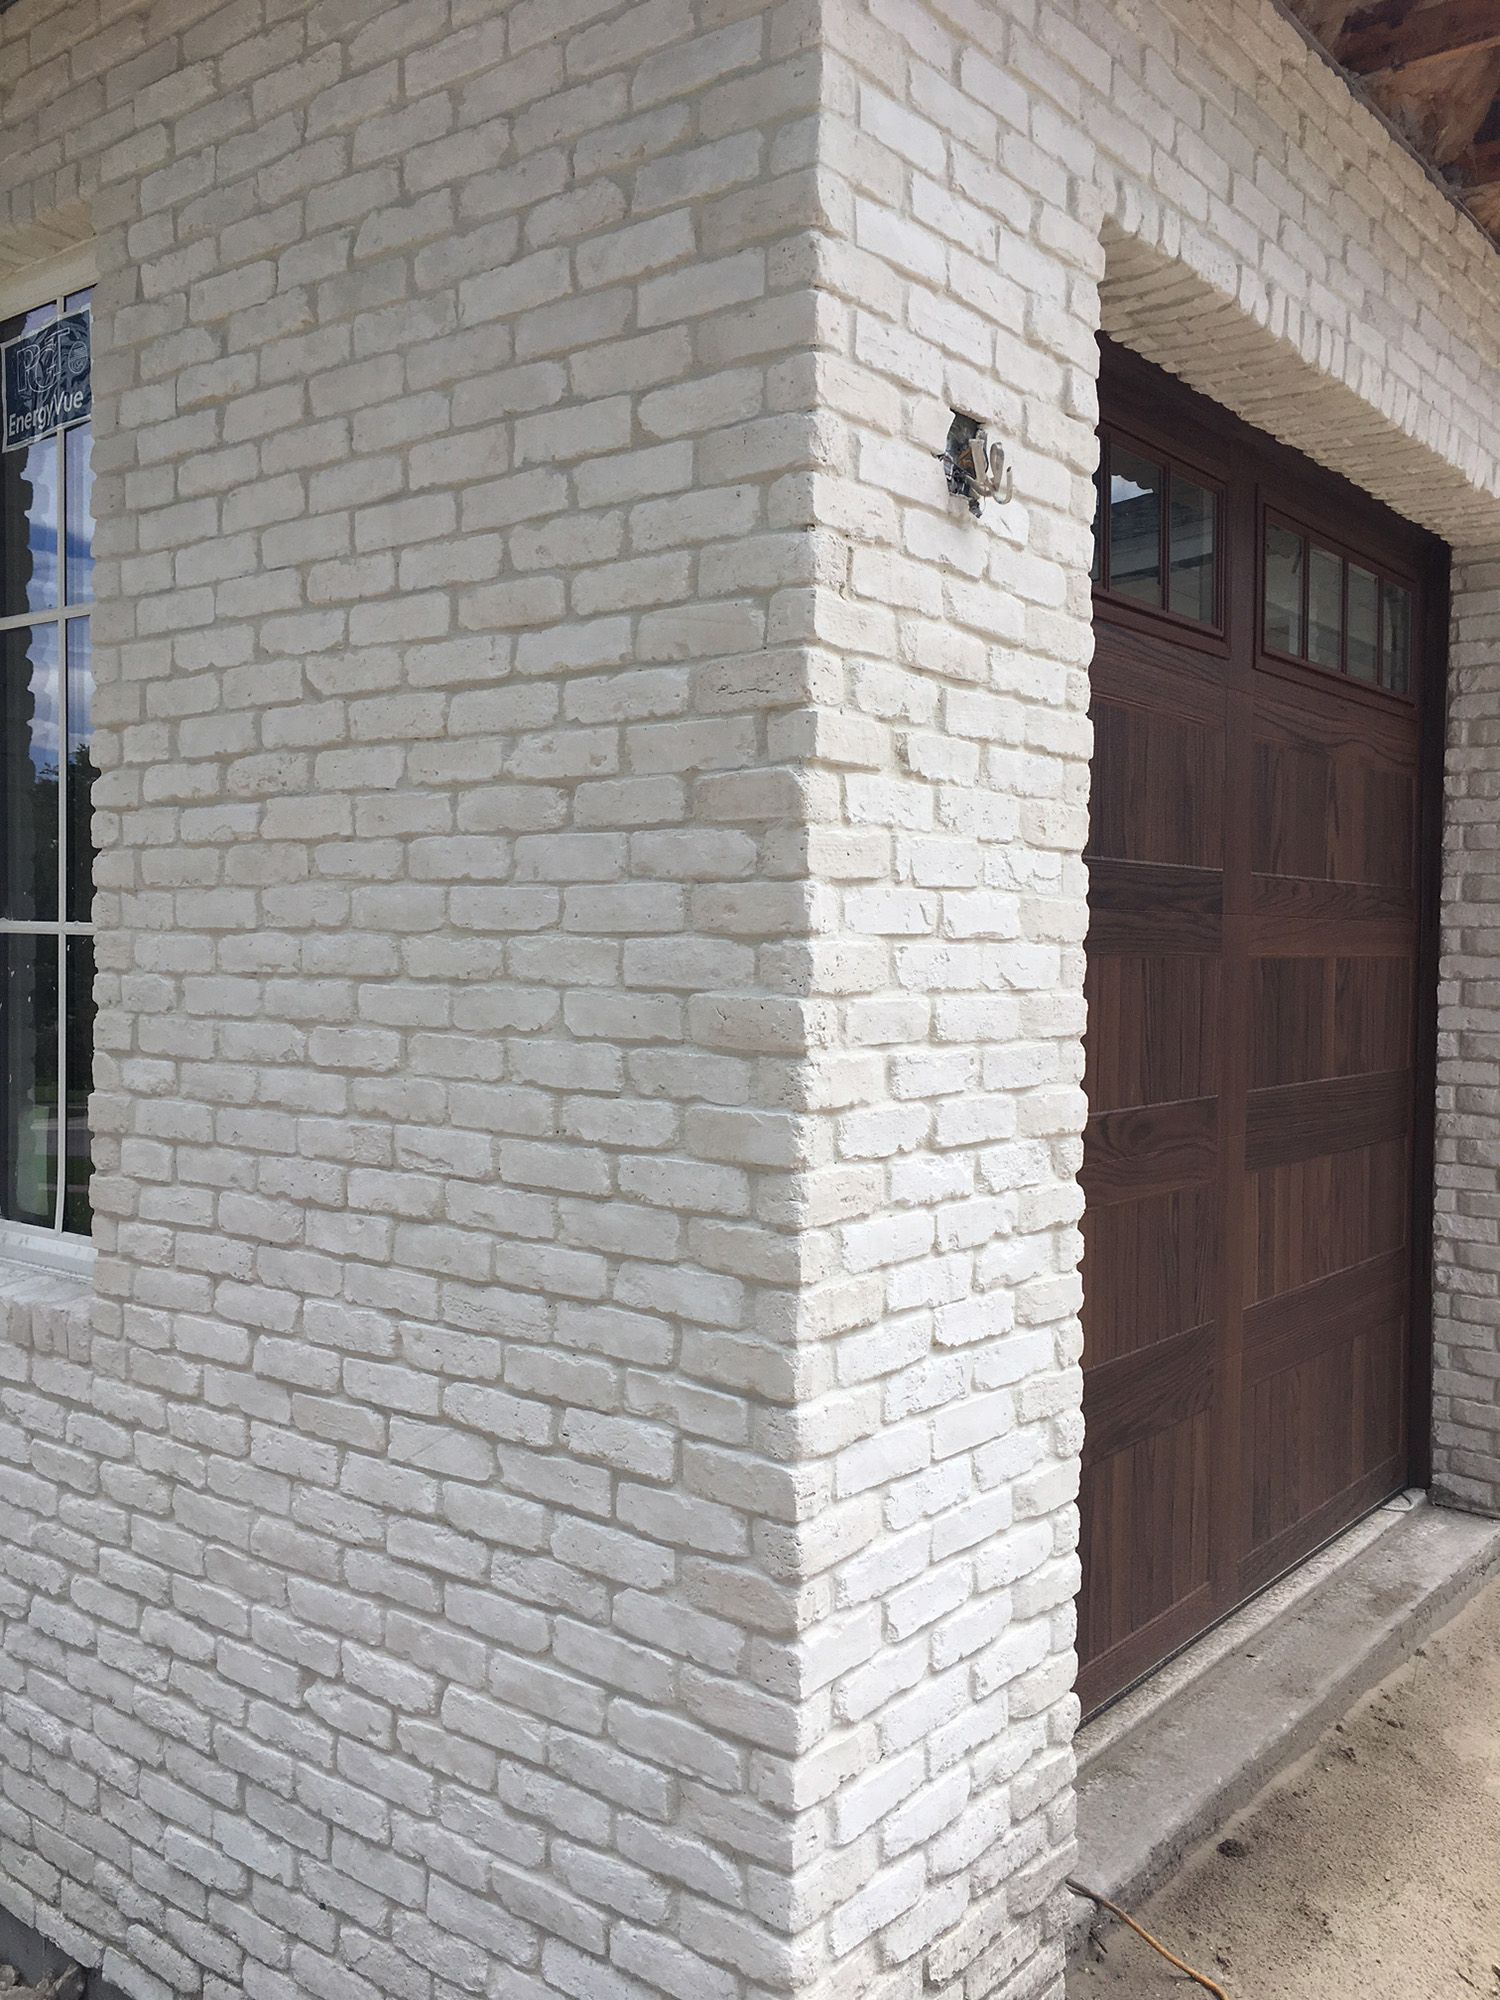 Koni Brick Old Chicago Brick Exterior House Brick Veneer